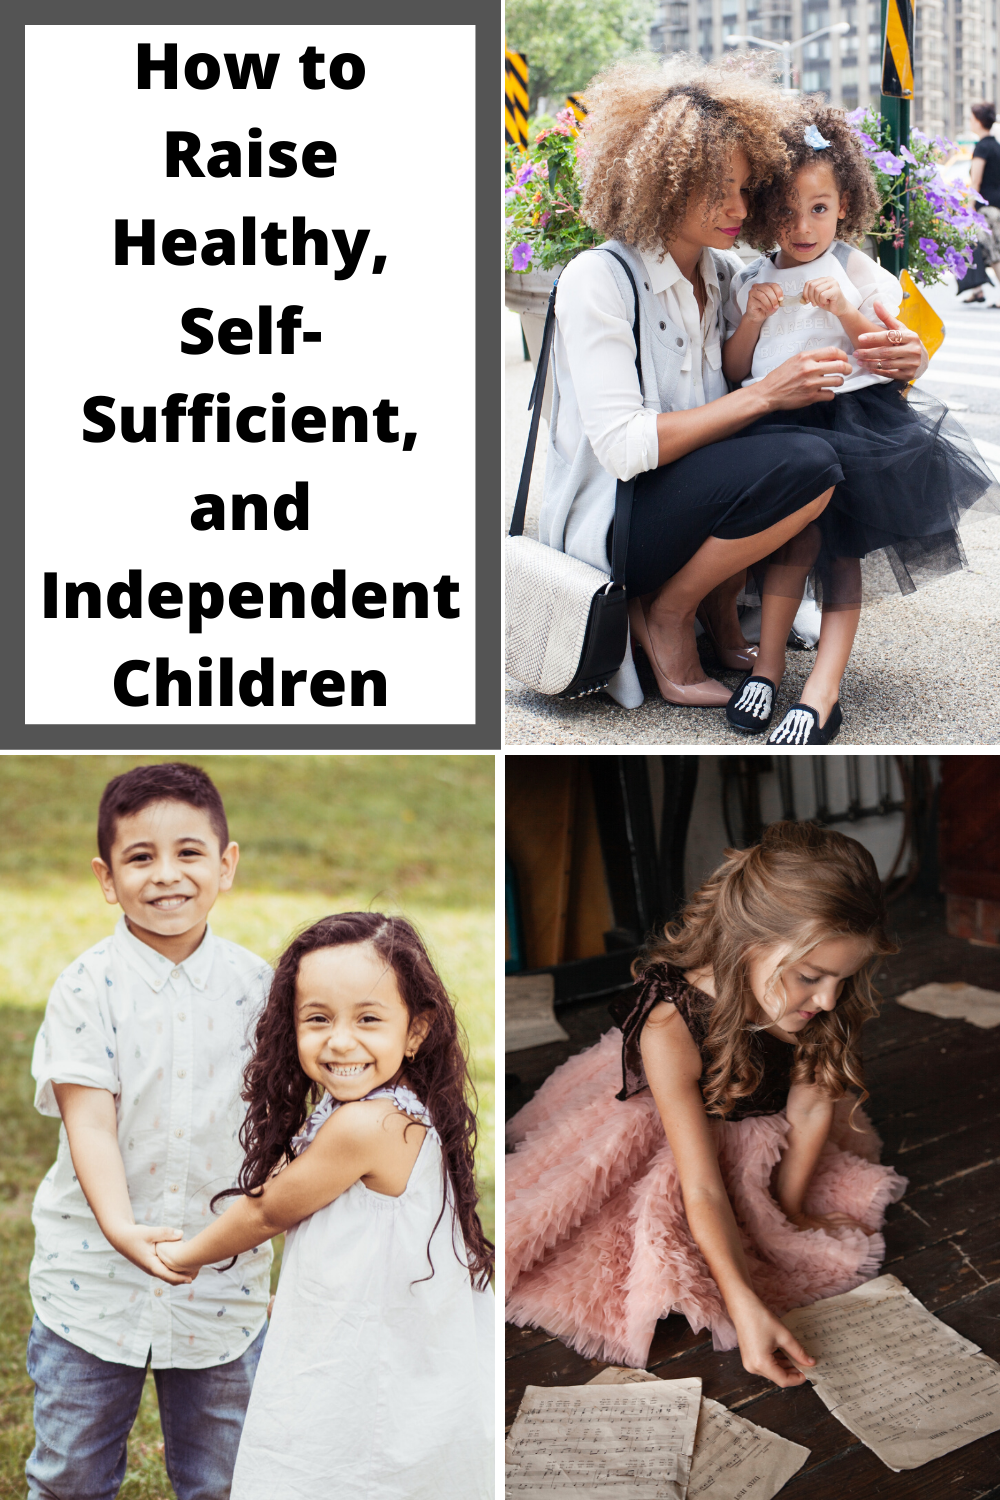 How to Raise Healthy, Self-Sufficient, and Independent Children